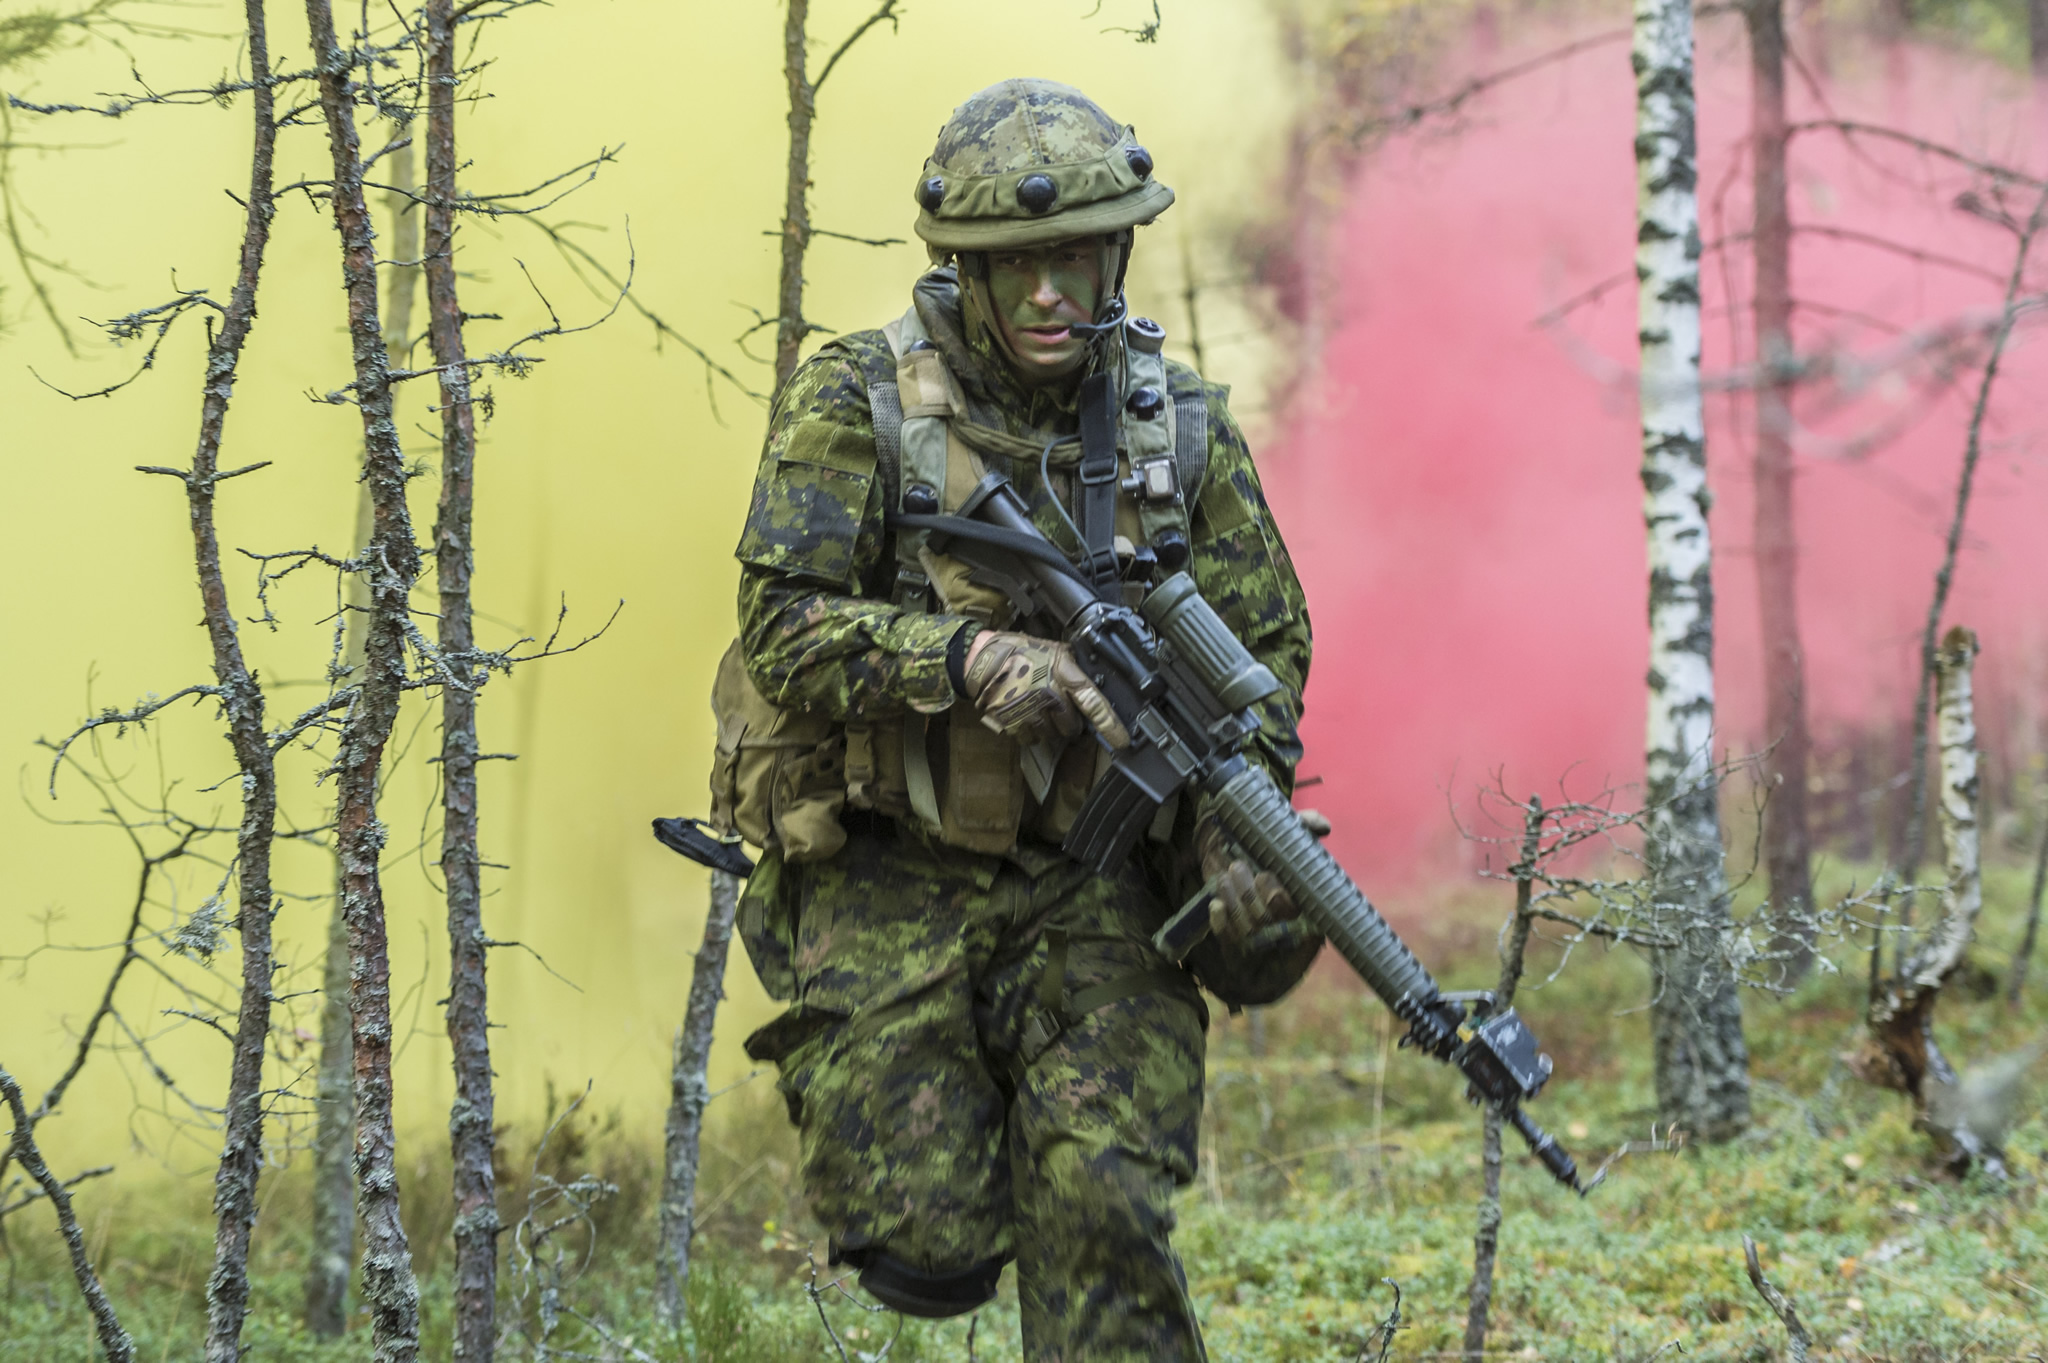 Kadaga, Latvia. 25 September 2015. Corporal Jonathan Desbiens-Fauteux, 6R22eR, runs as smoke fills the forest, while peeling back from an ambush during Exercise SILVER ARROW at Adazi Military Training Area in Kadaga, Latvia during Operation REASSURANCE